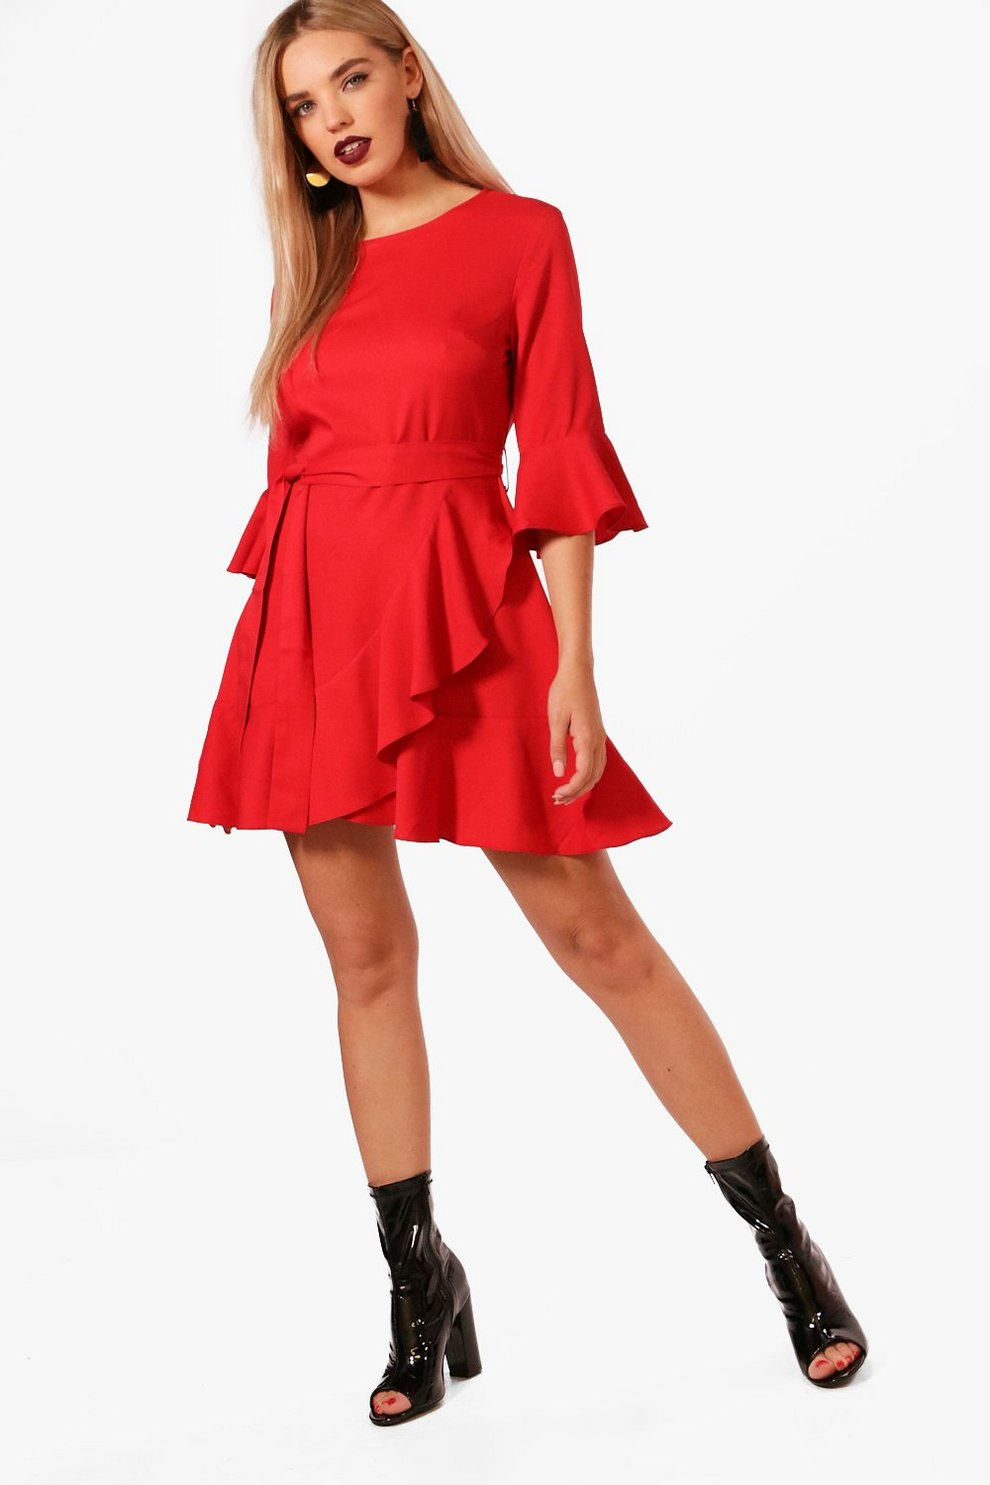 Clearance Visit New Boohoo Ruffle Detail Belted Skater Dress Find Great Sale Online Looking For Online Explore For Sale Inexpensive Cheap Price RsUhRw